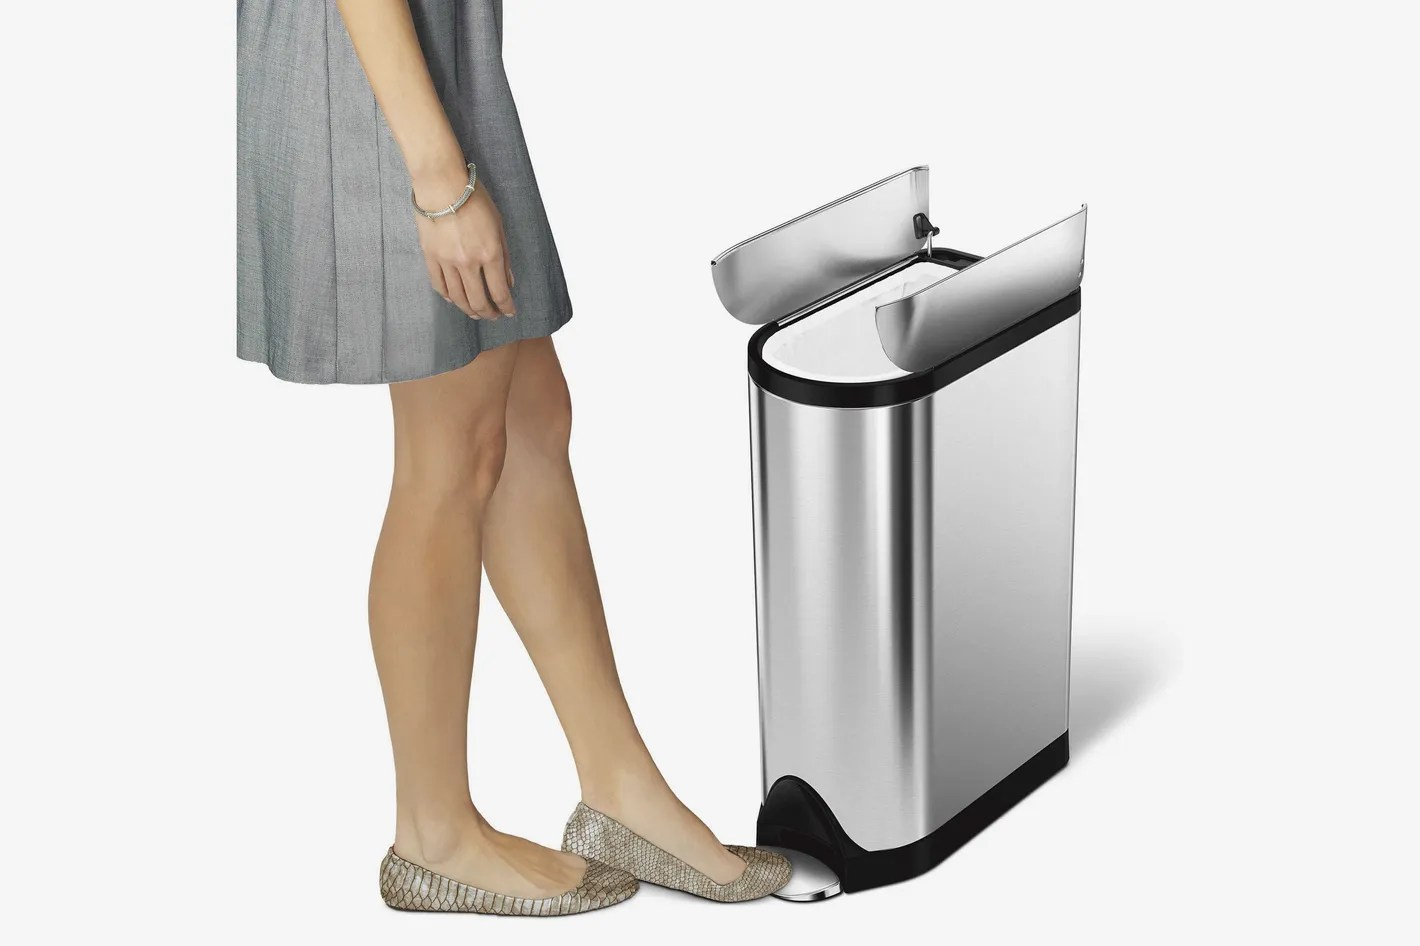 The 13 Best Stylish and GoodLooking Kitchen Trash Cans 2019